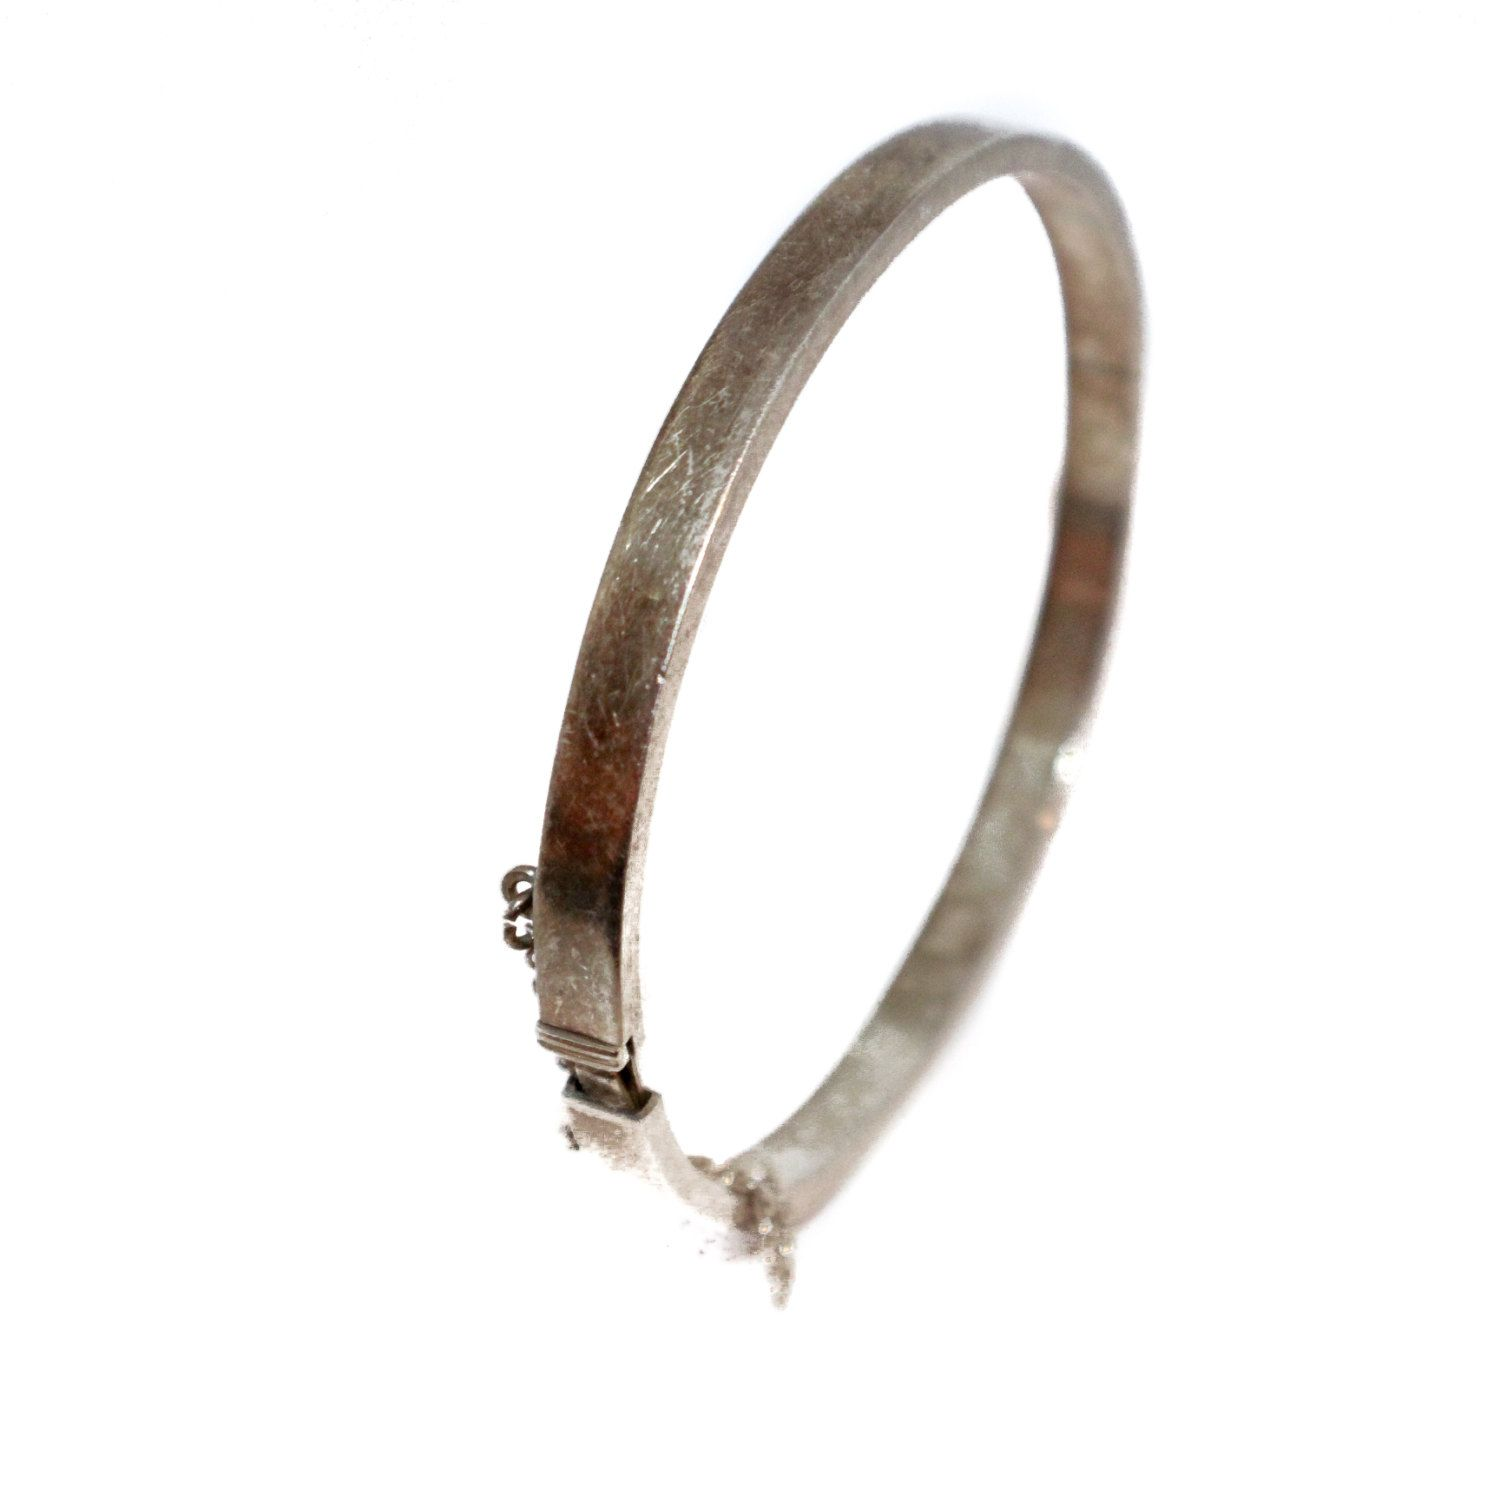 Minimalist sterling silver bangle bracelet with locking clasp and